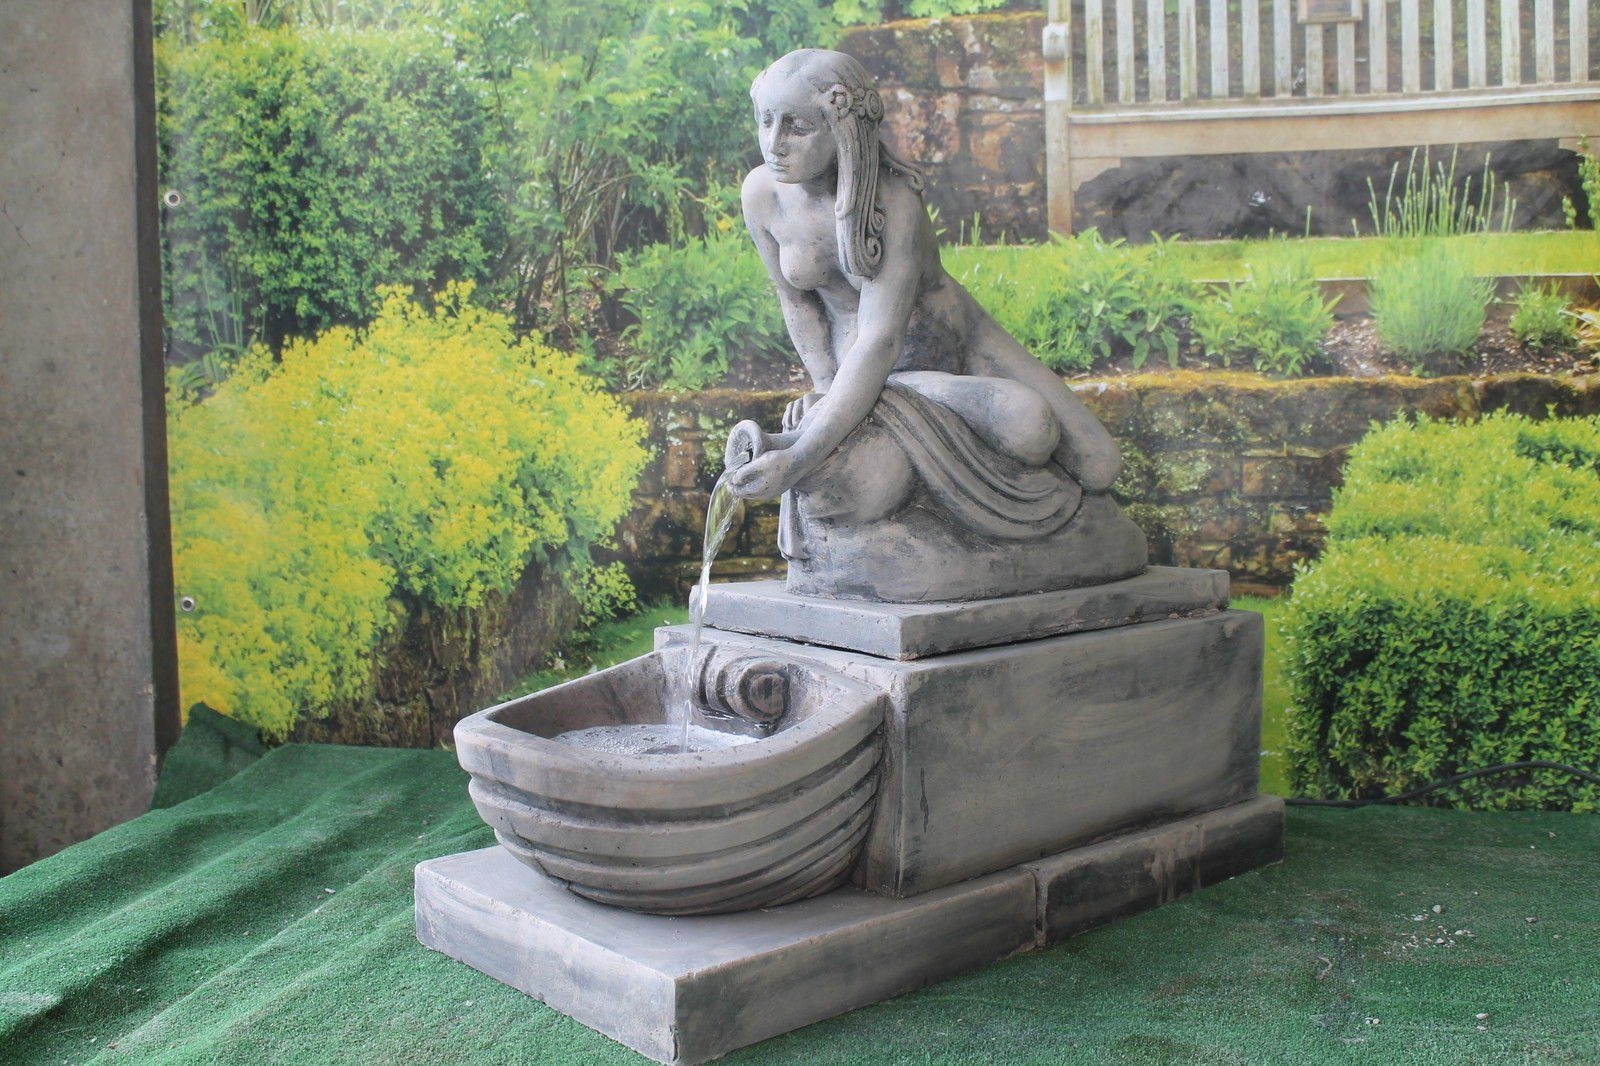 Attirant Ornate Stone Pouring Water Lady Water Feature Ornamnet Fountain: Amazon.co. Uk: Garden U0026 Outdoors £344